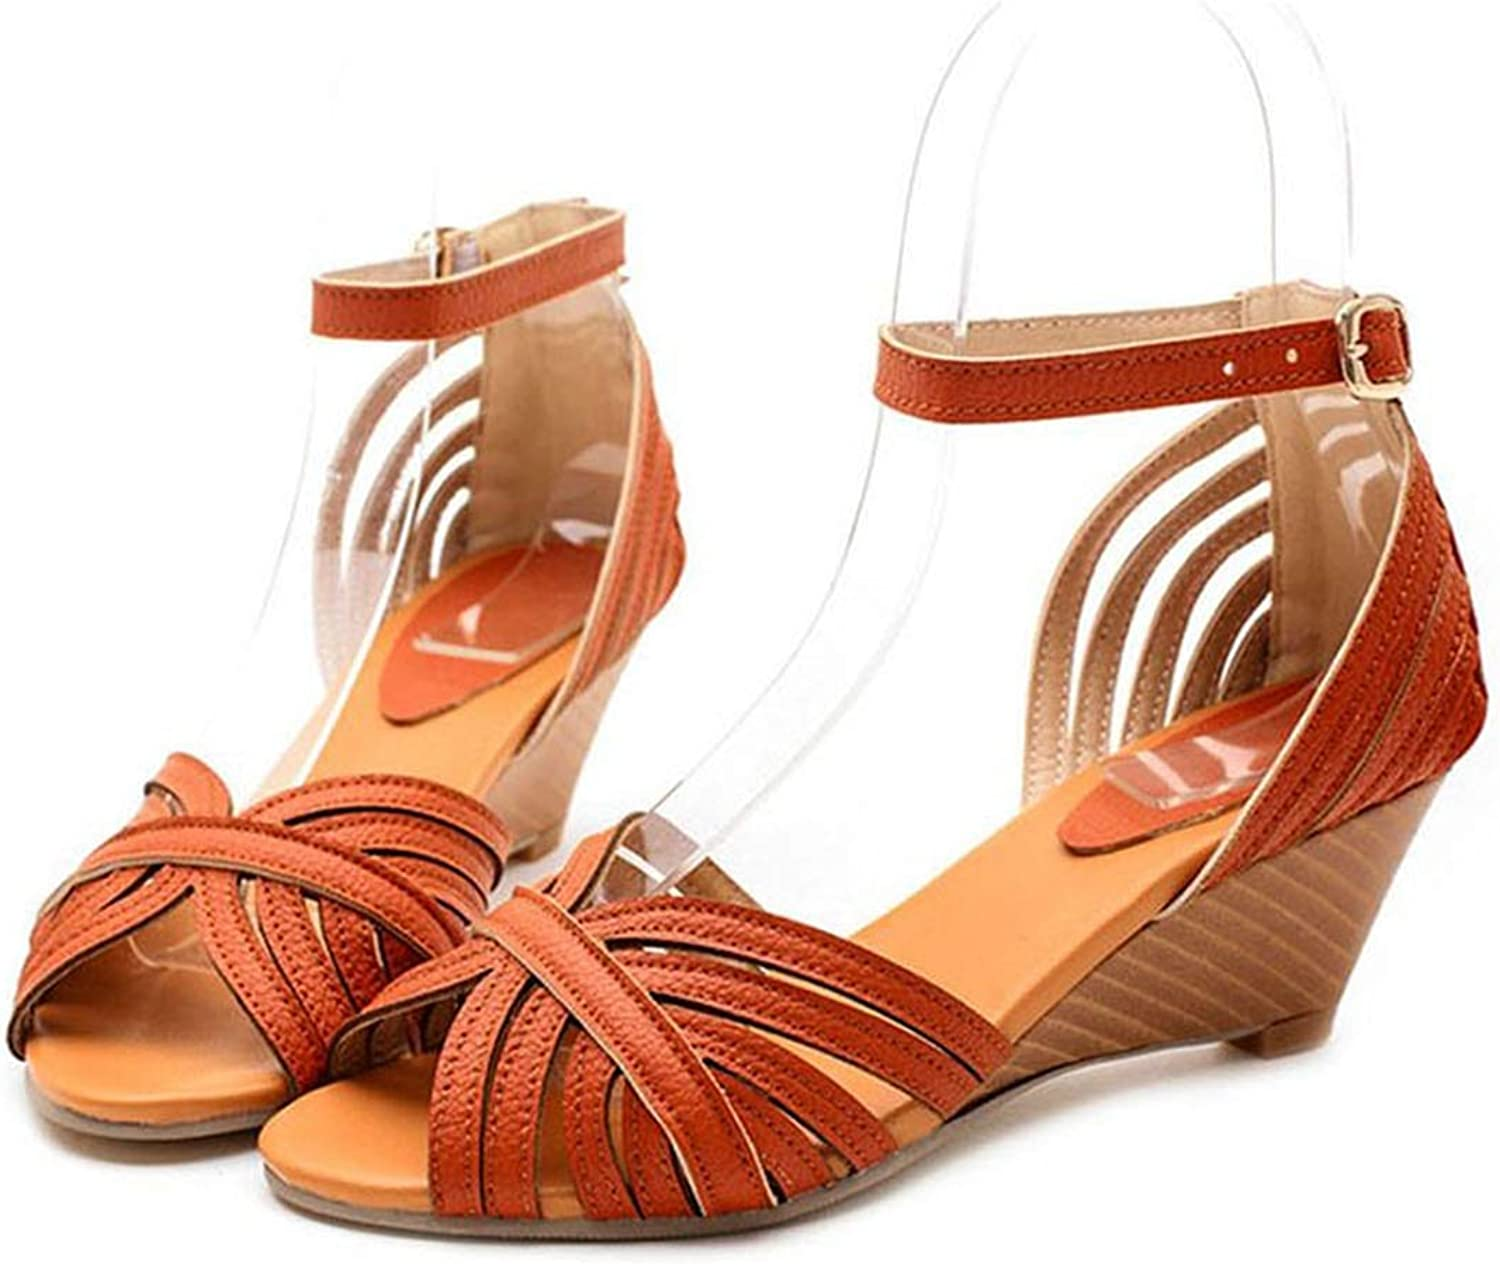 Women's Sandals Summer Bohemia Gladiator Sandals Wedege shoes Women Ankle Strap Cut-Outs